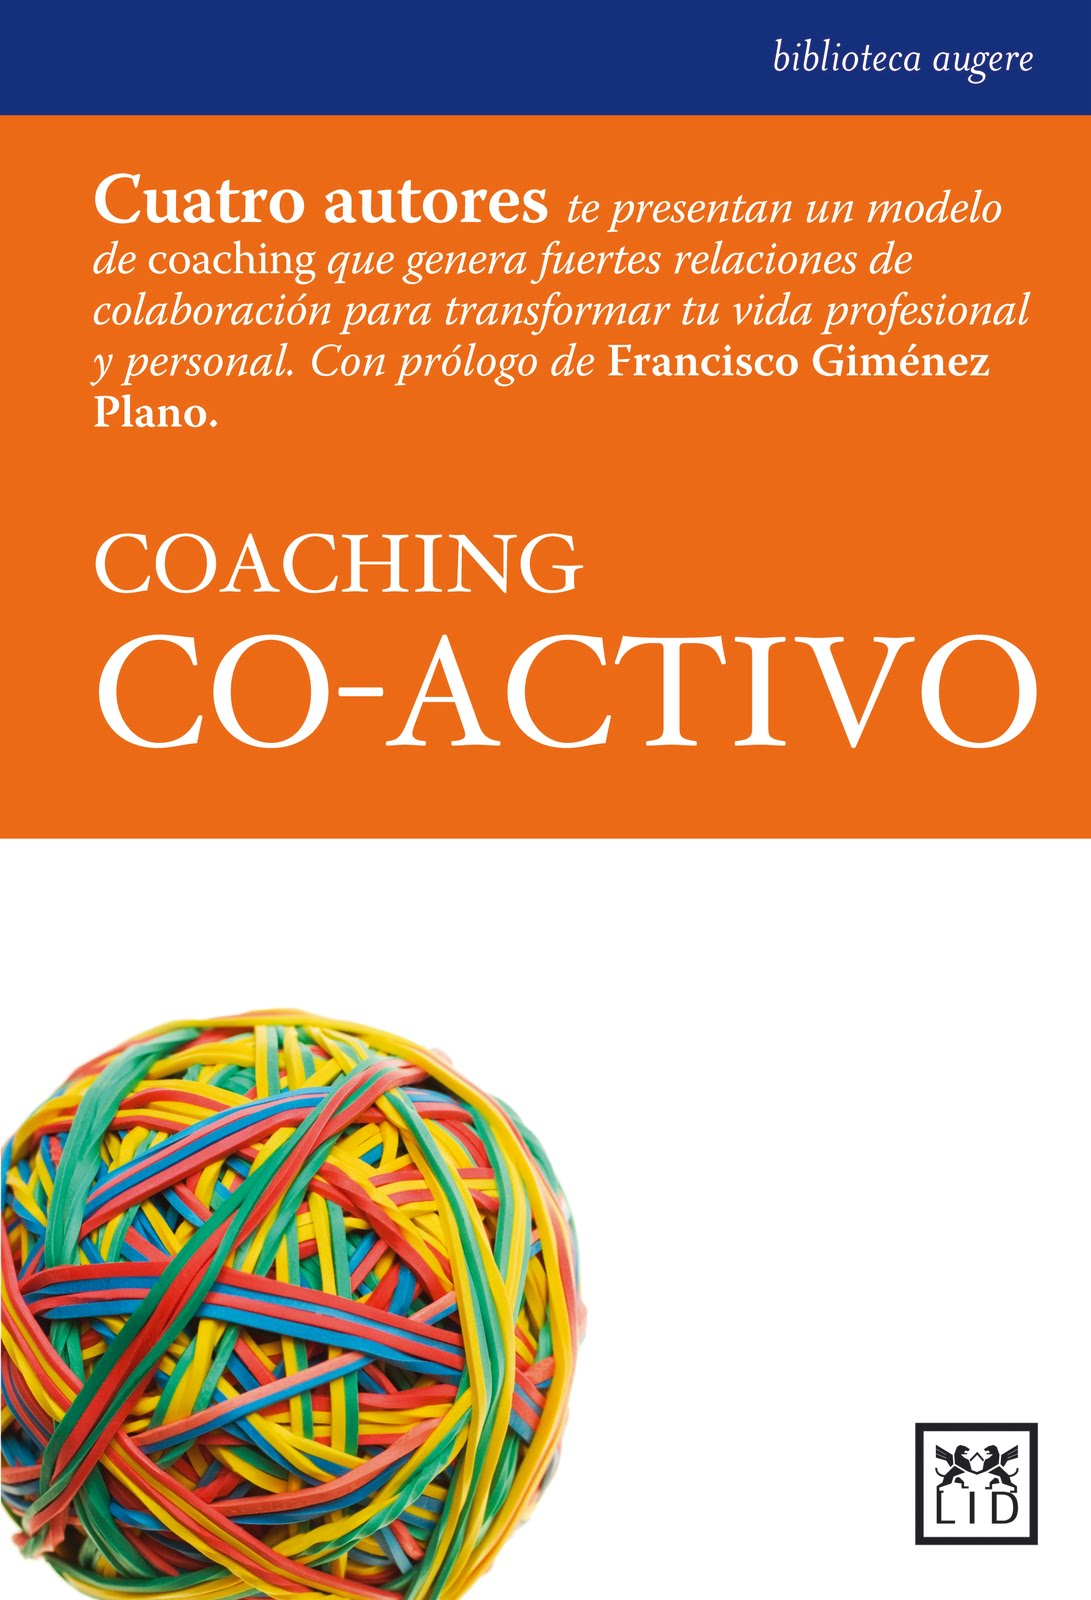 Coaching co-activo.jpg